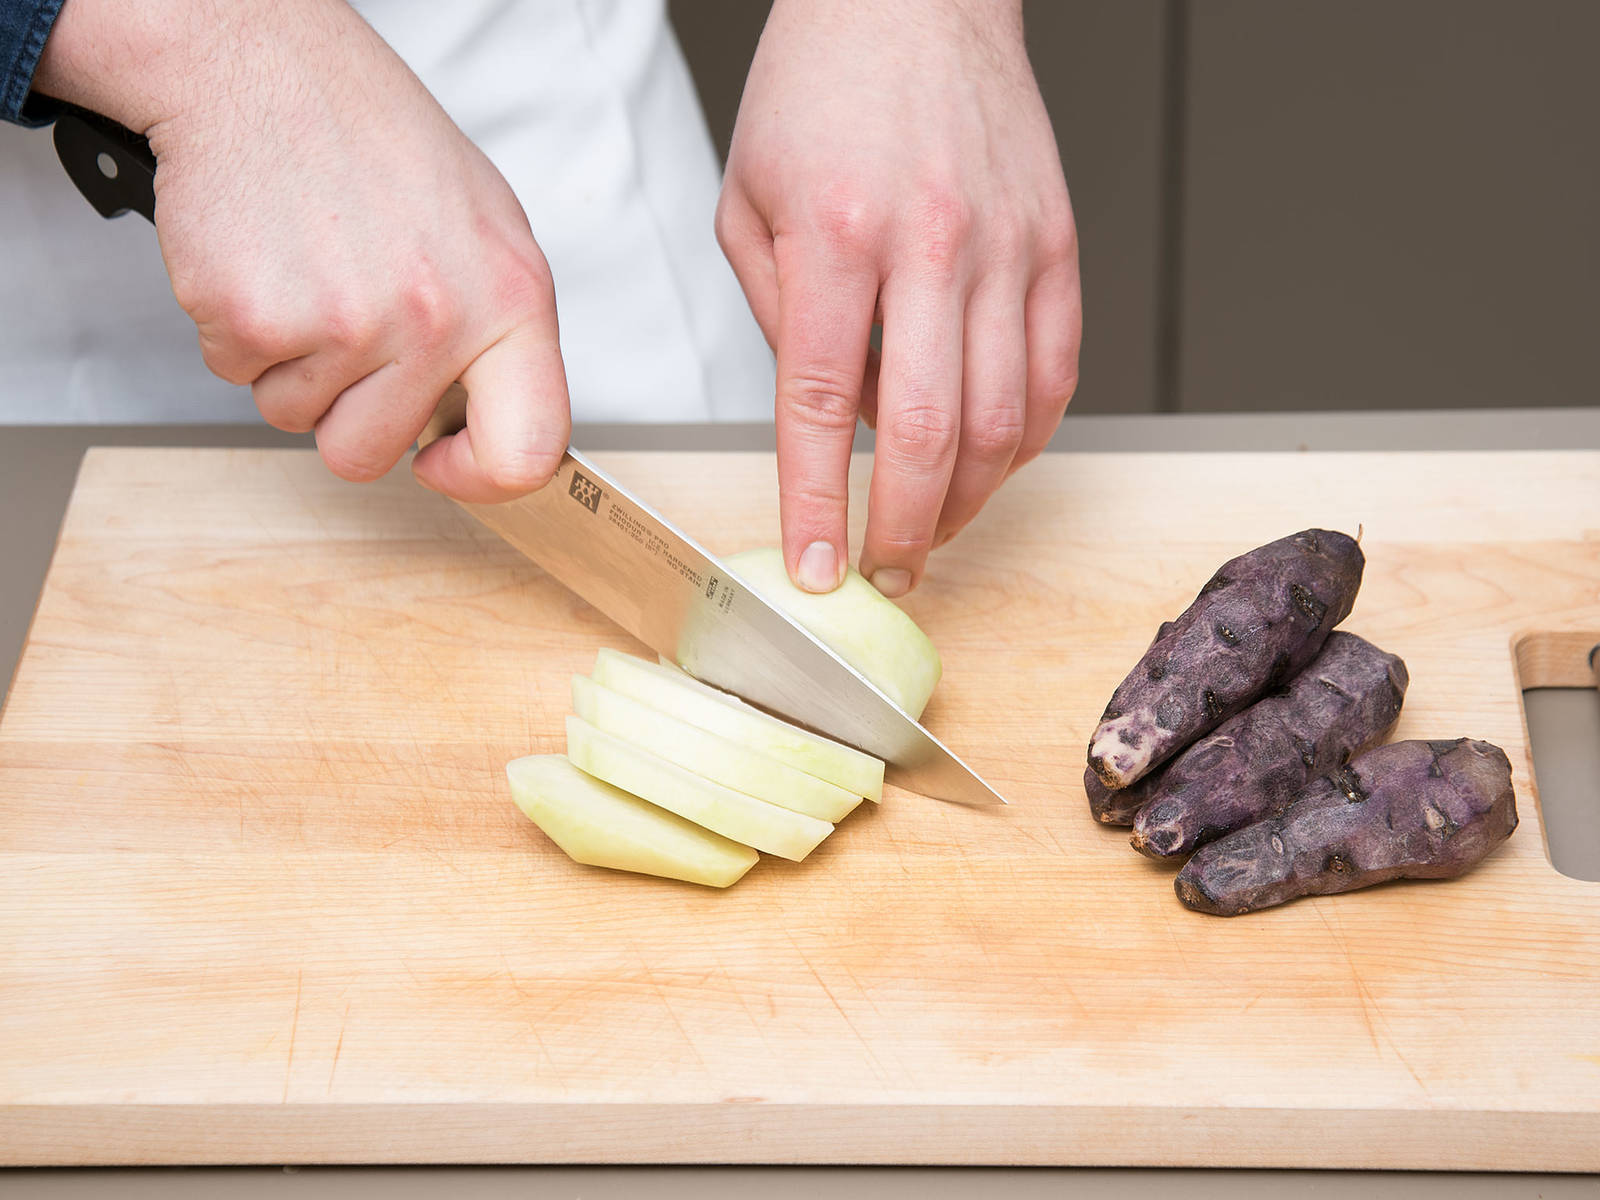 Peel potatoes and kohlrabi and cut into small pieces. Cook in salted boiling water for approx. 15 min. or until tender.